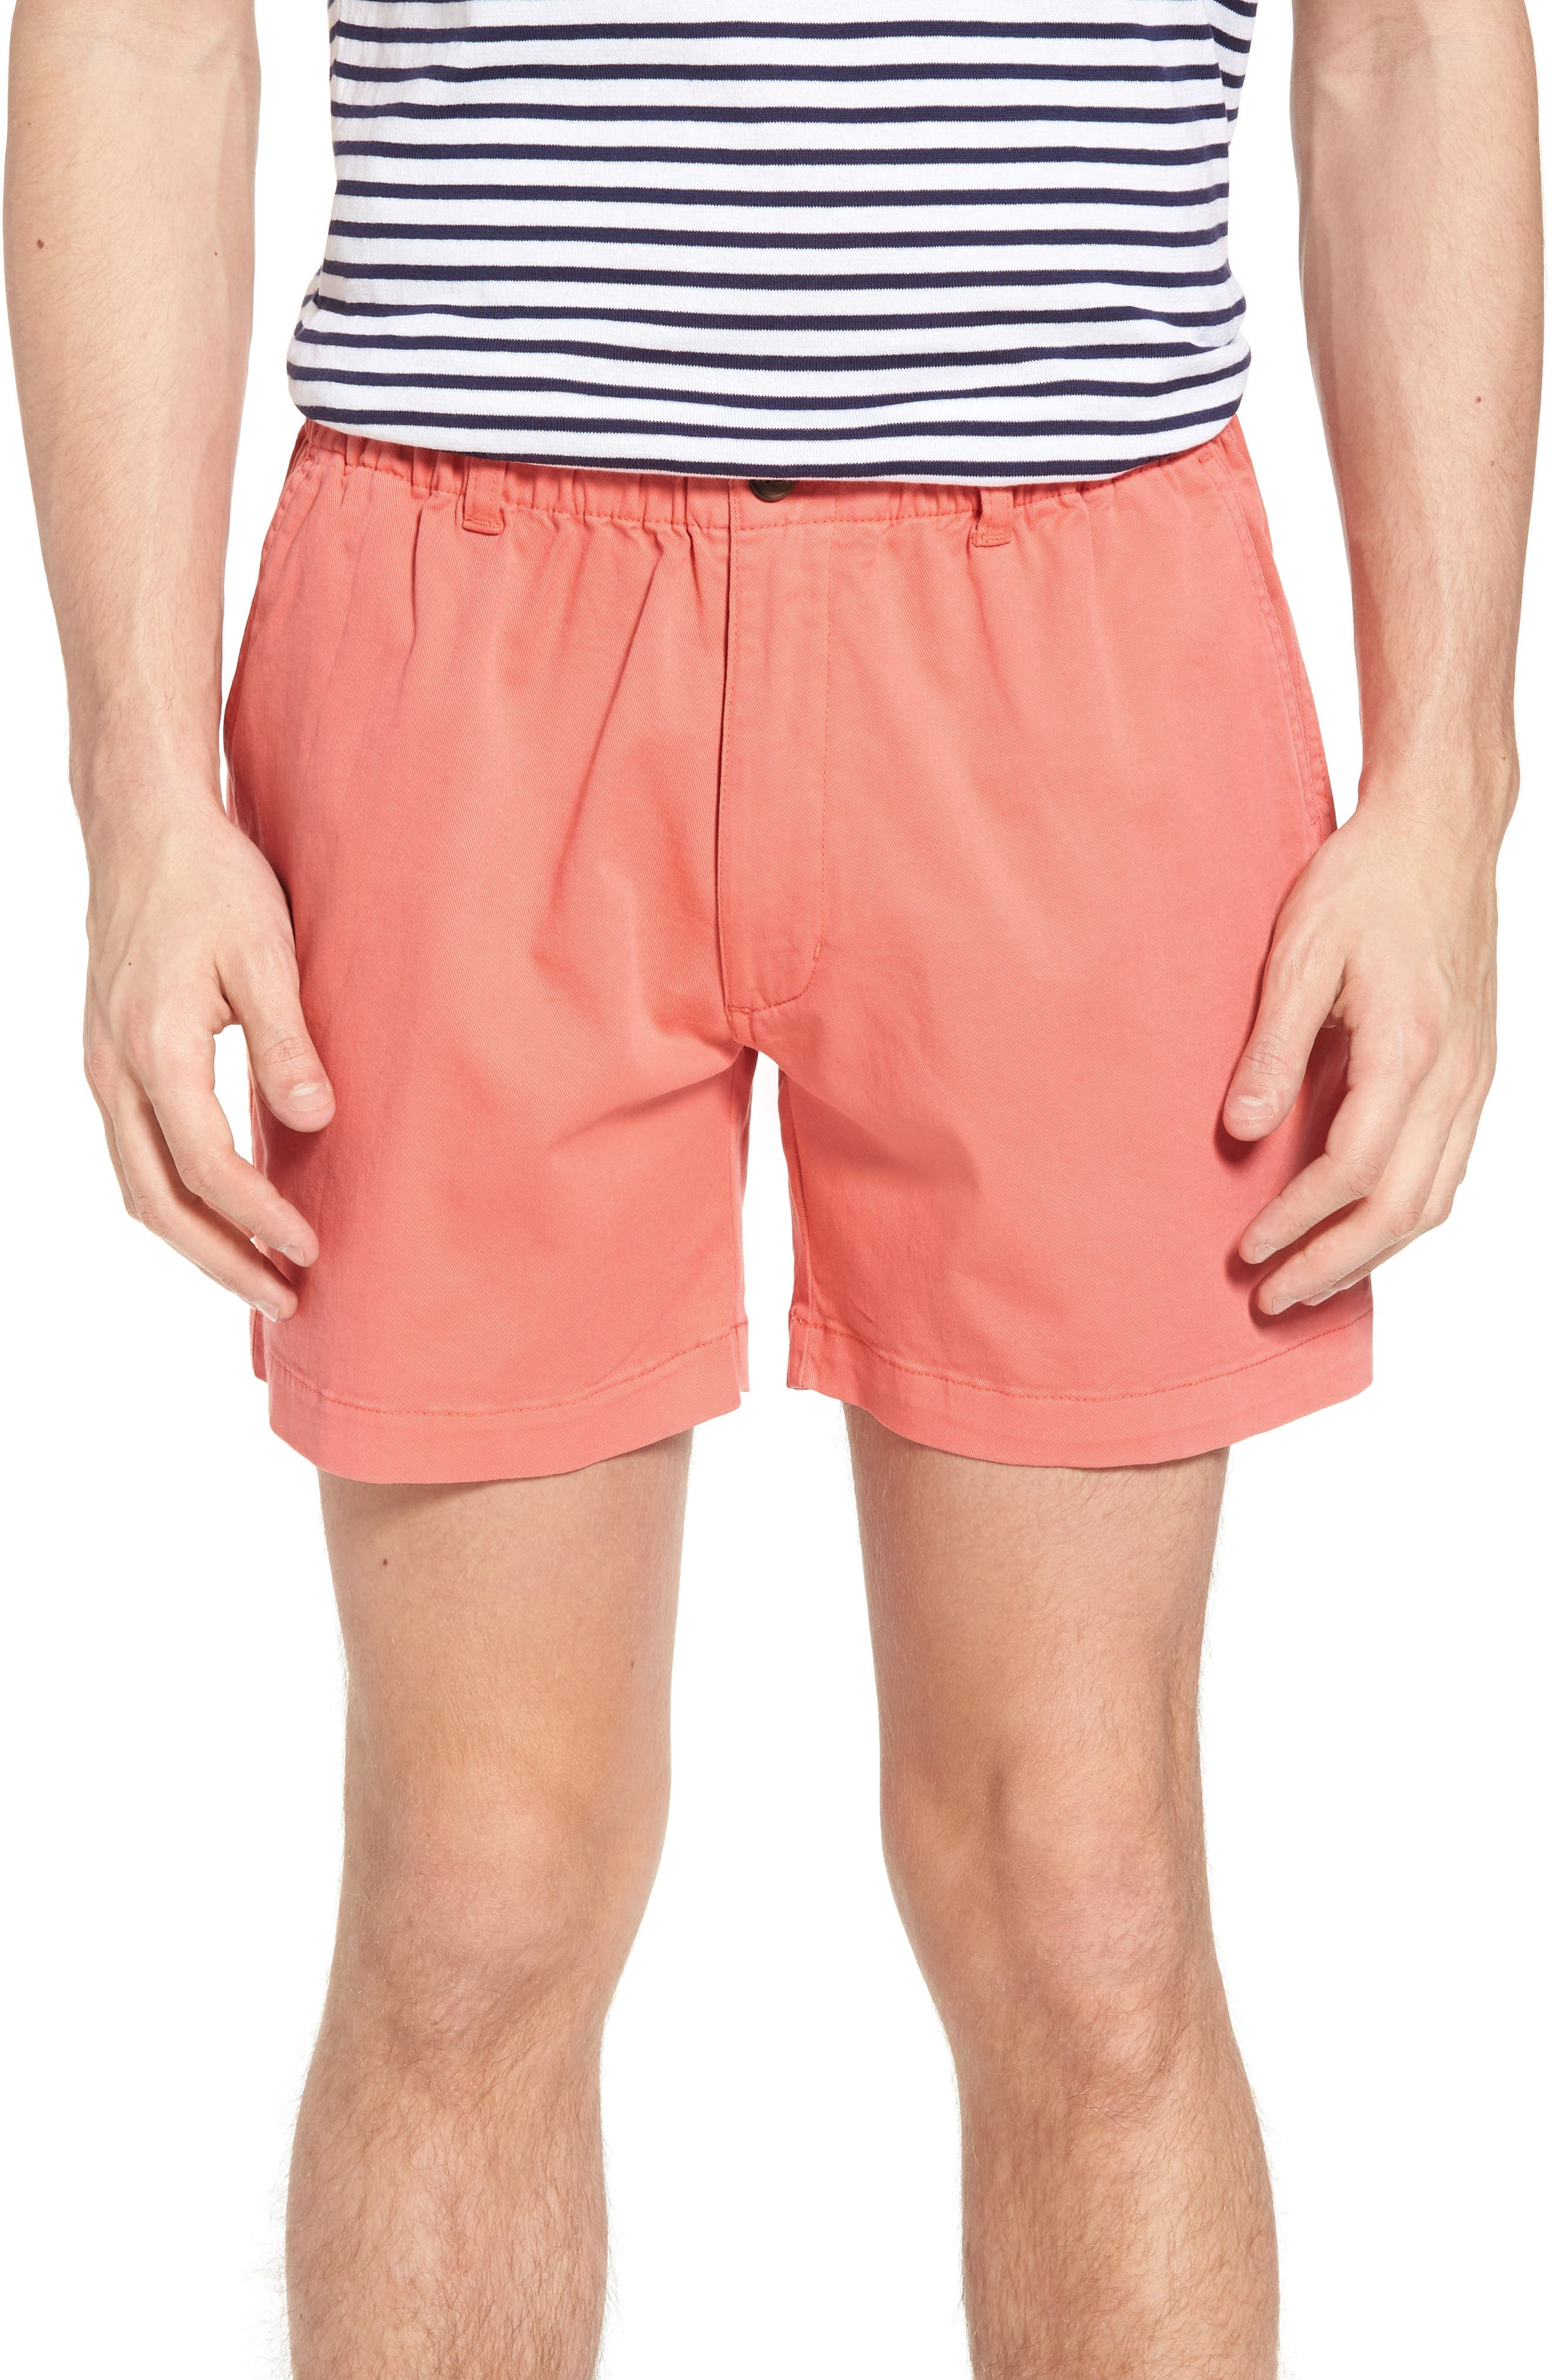 Vintage Men's Swimsuits – 1930s to 1970s History Mens Vintage 1946 Snappers Elastic Waist 5.5 Inch Stretch Shorts Size X-Large - Coral $55.00 AT vintagedancer.com